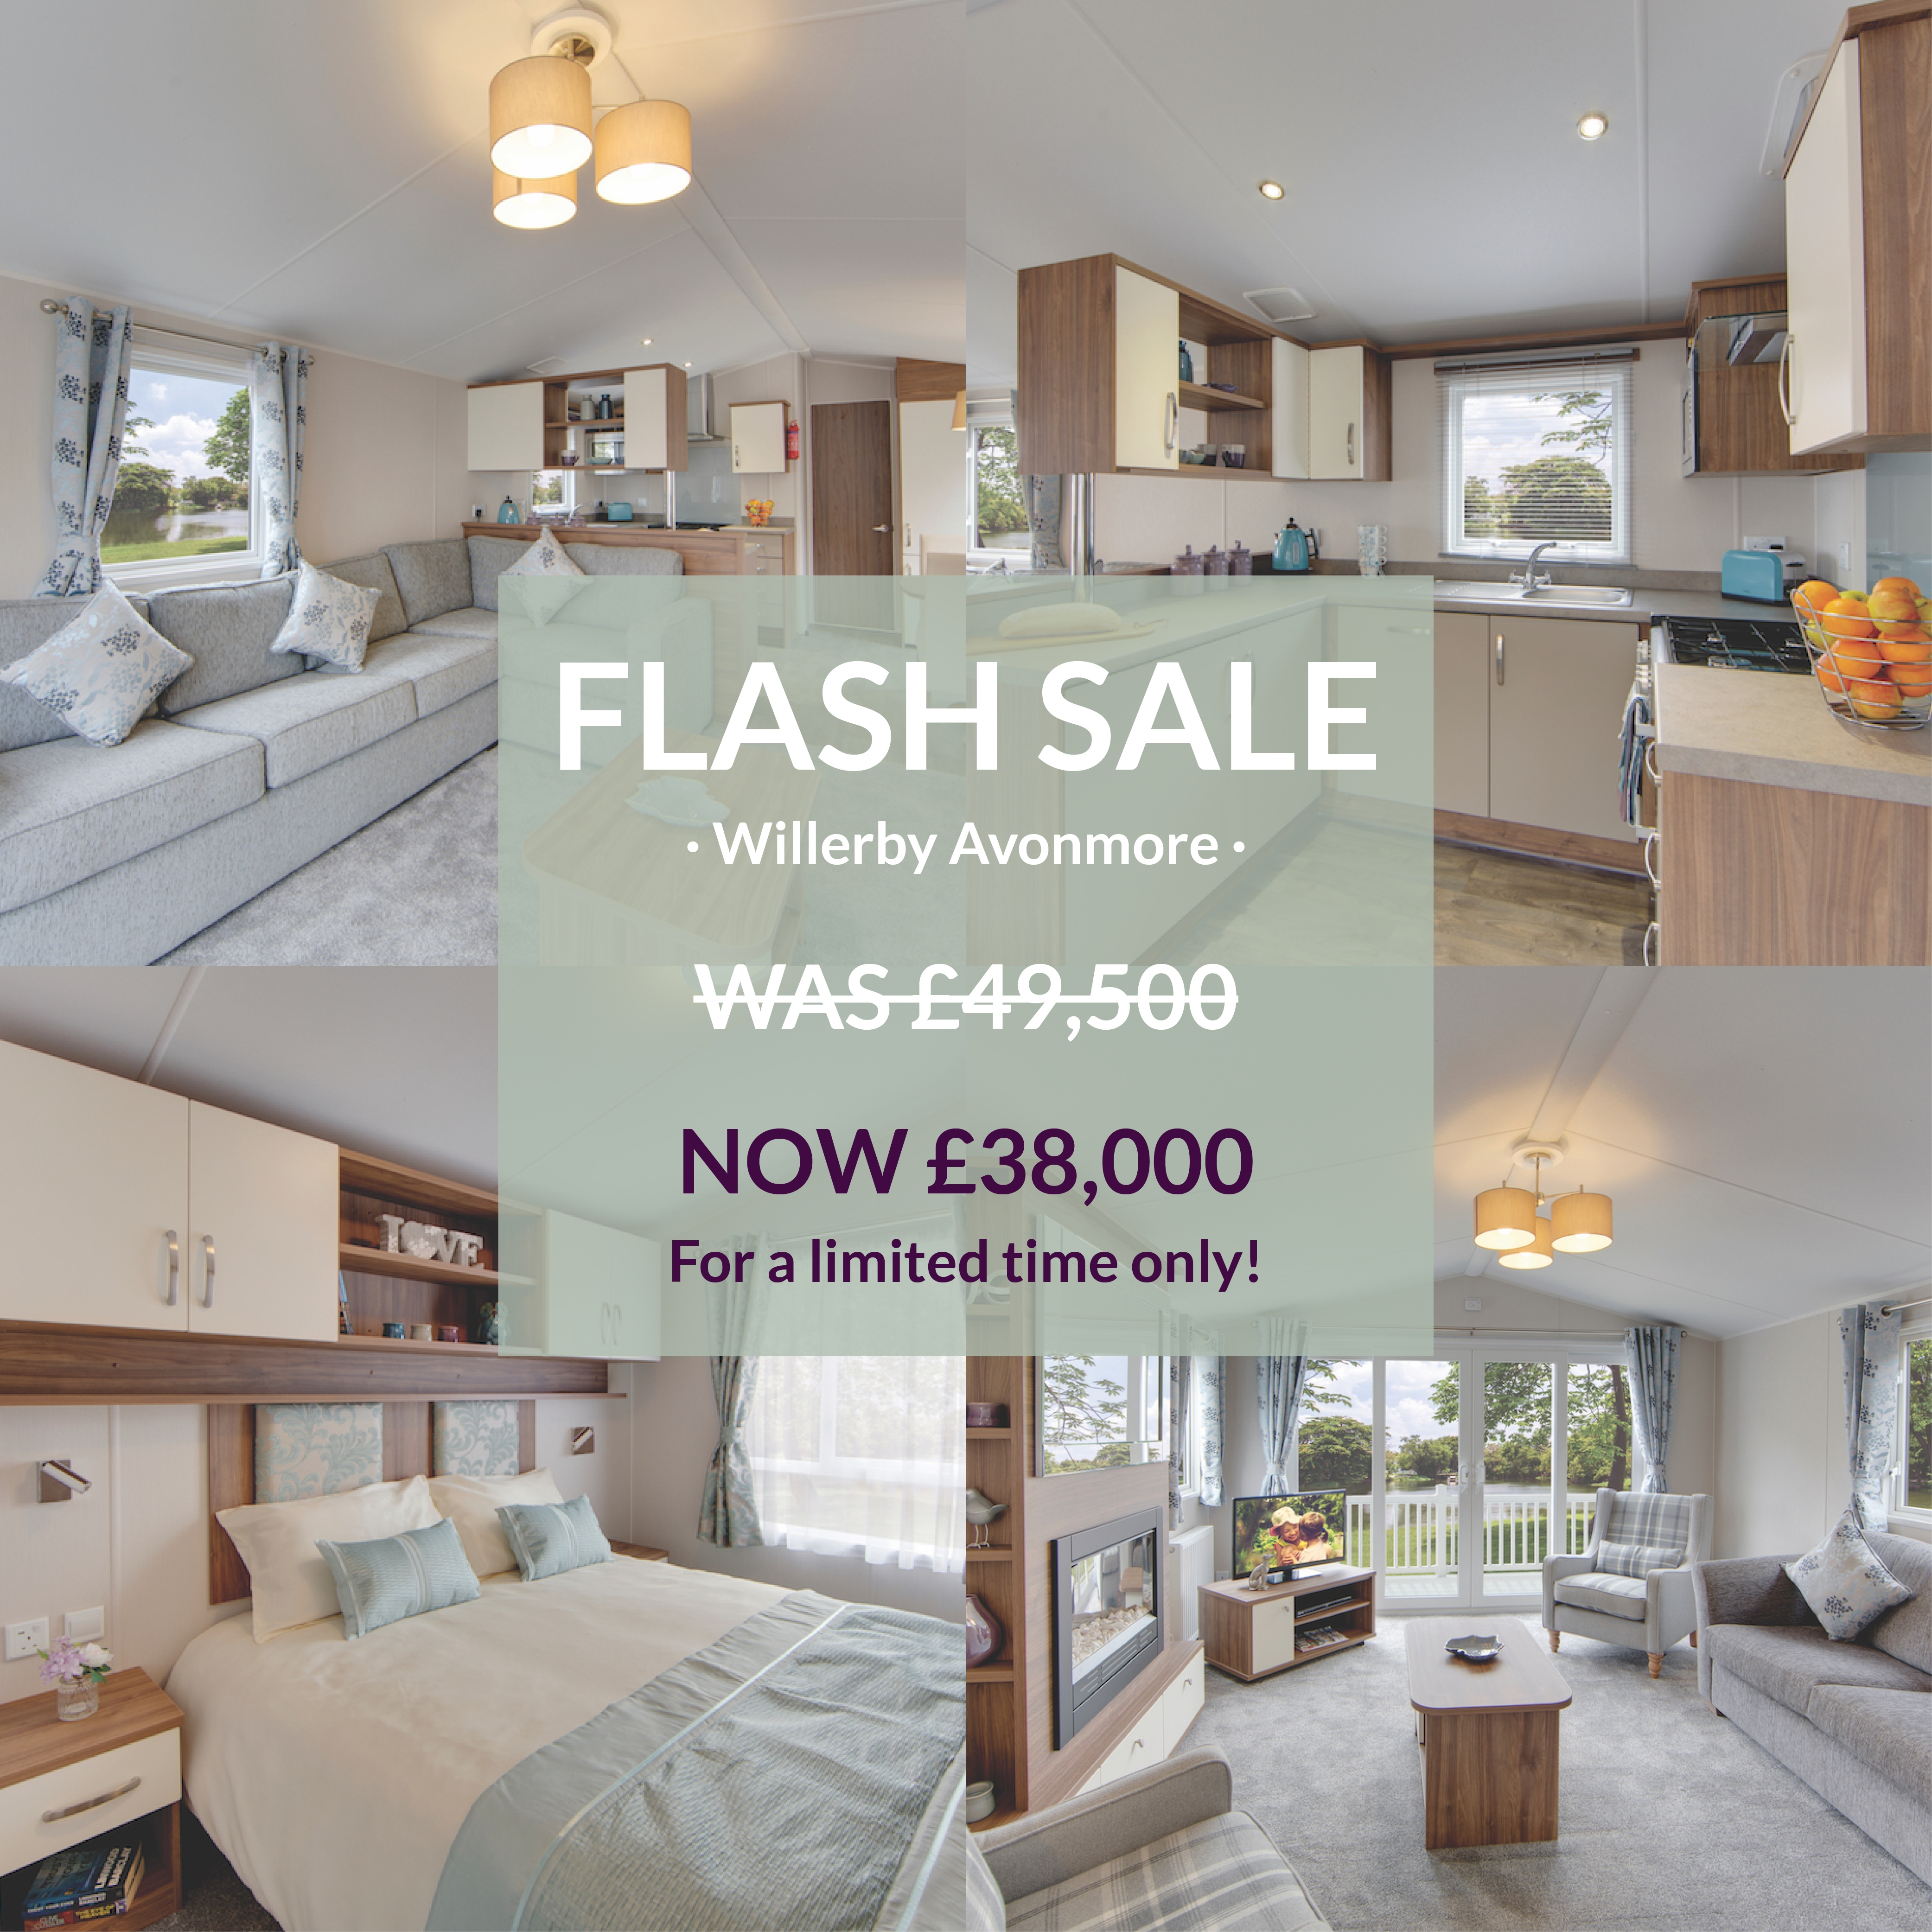 Pitch 40 Willerby Avonmore Flash Sale Social Graphic 1